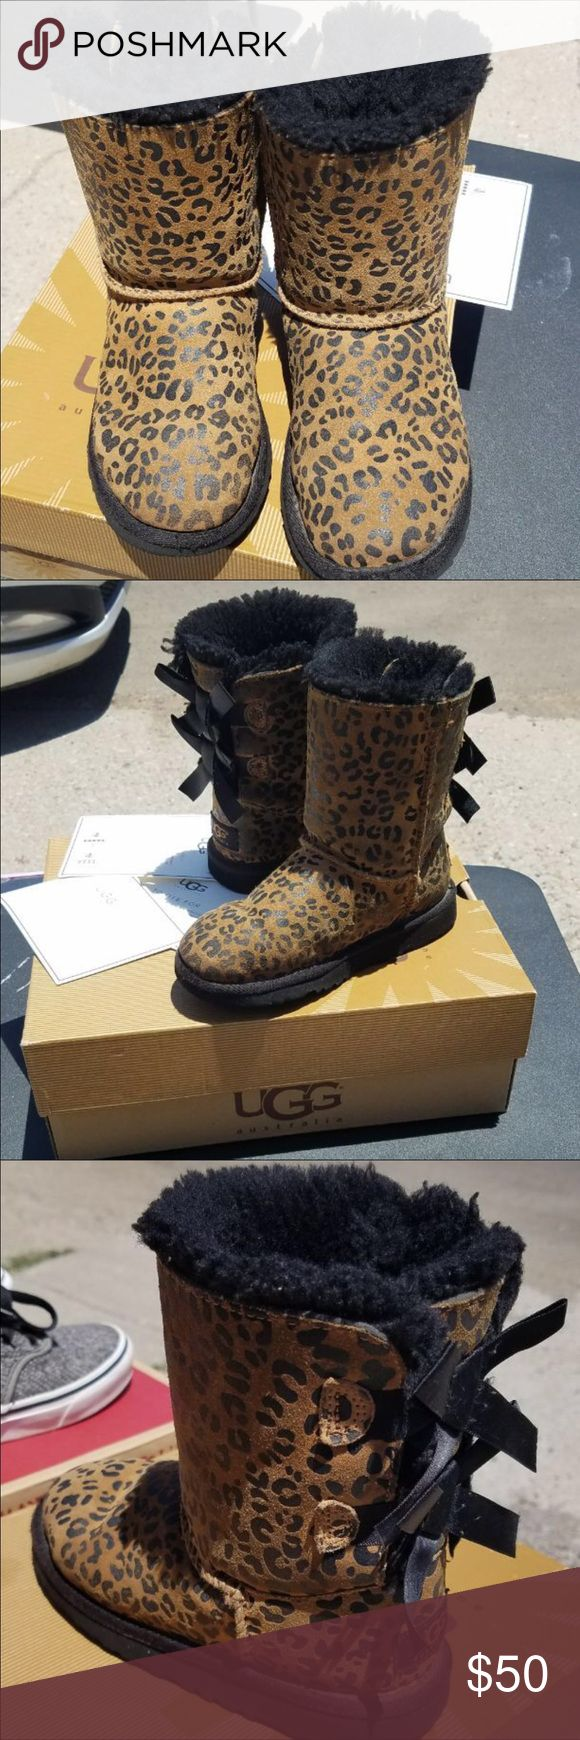 EUC little girls size 13 cheetah print UGG boots! EUC (no known flaws and in perfect condition) girls bailey bow cheetah/leopard print UGG boots in a size 13. Authentic UGGS- comes with original box and packaging. Super cute and rare boots- originally retail on Amazon for $150. UGG Shoes Boots